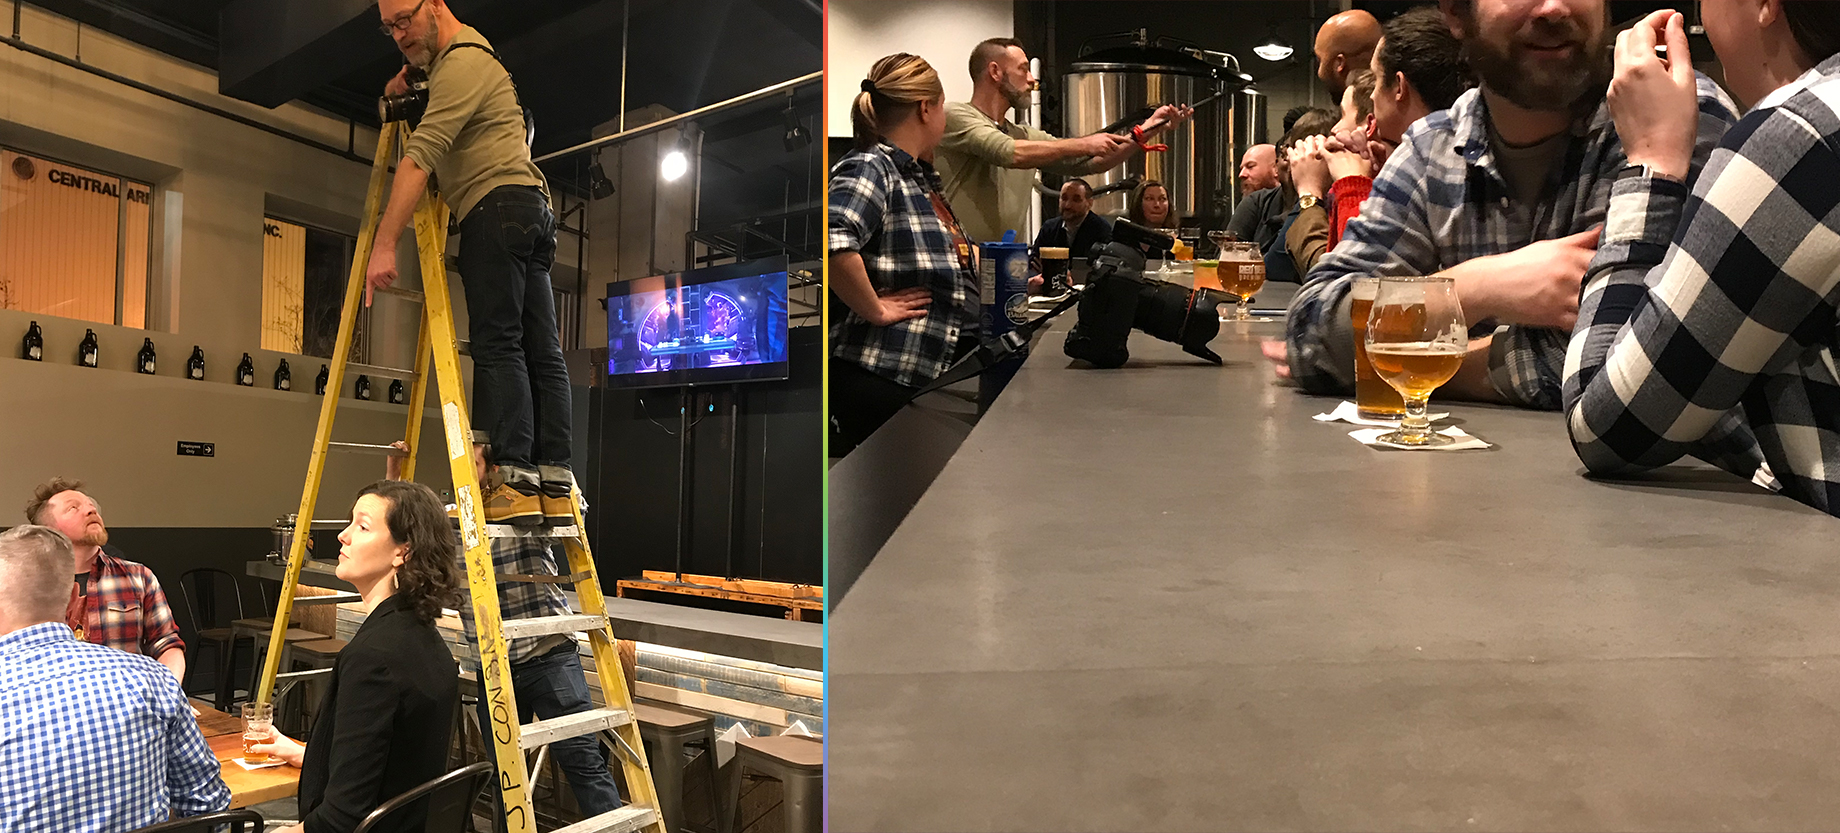 A photographer on a ladder, directing people below. A photographer being handed a light across the bar.